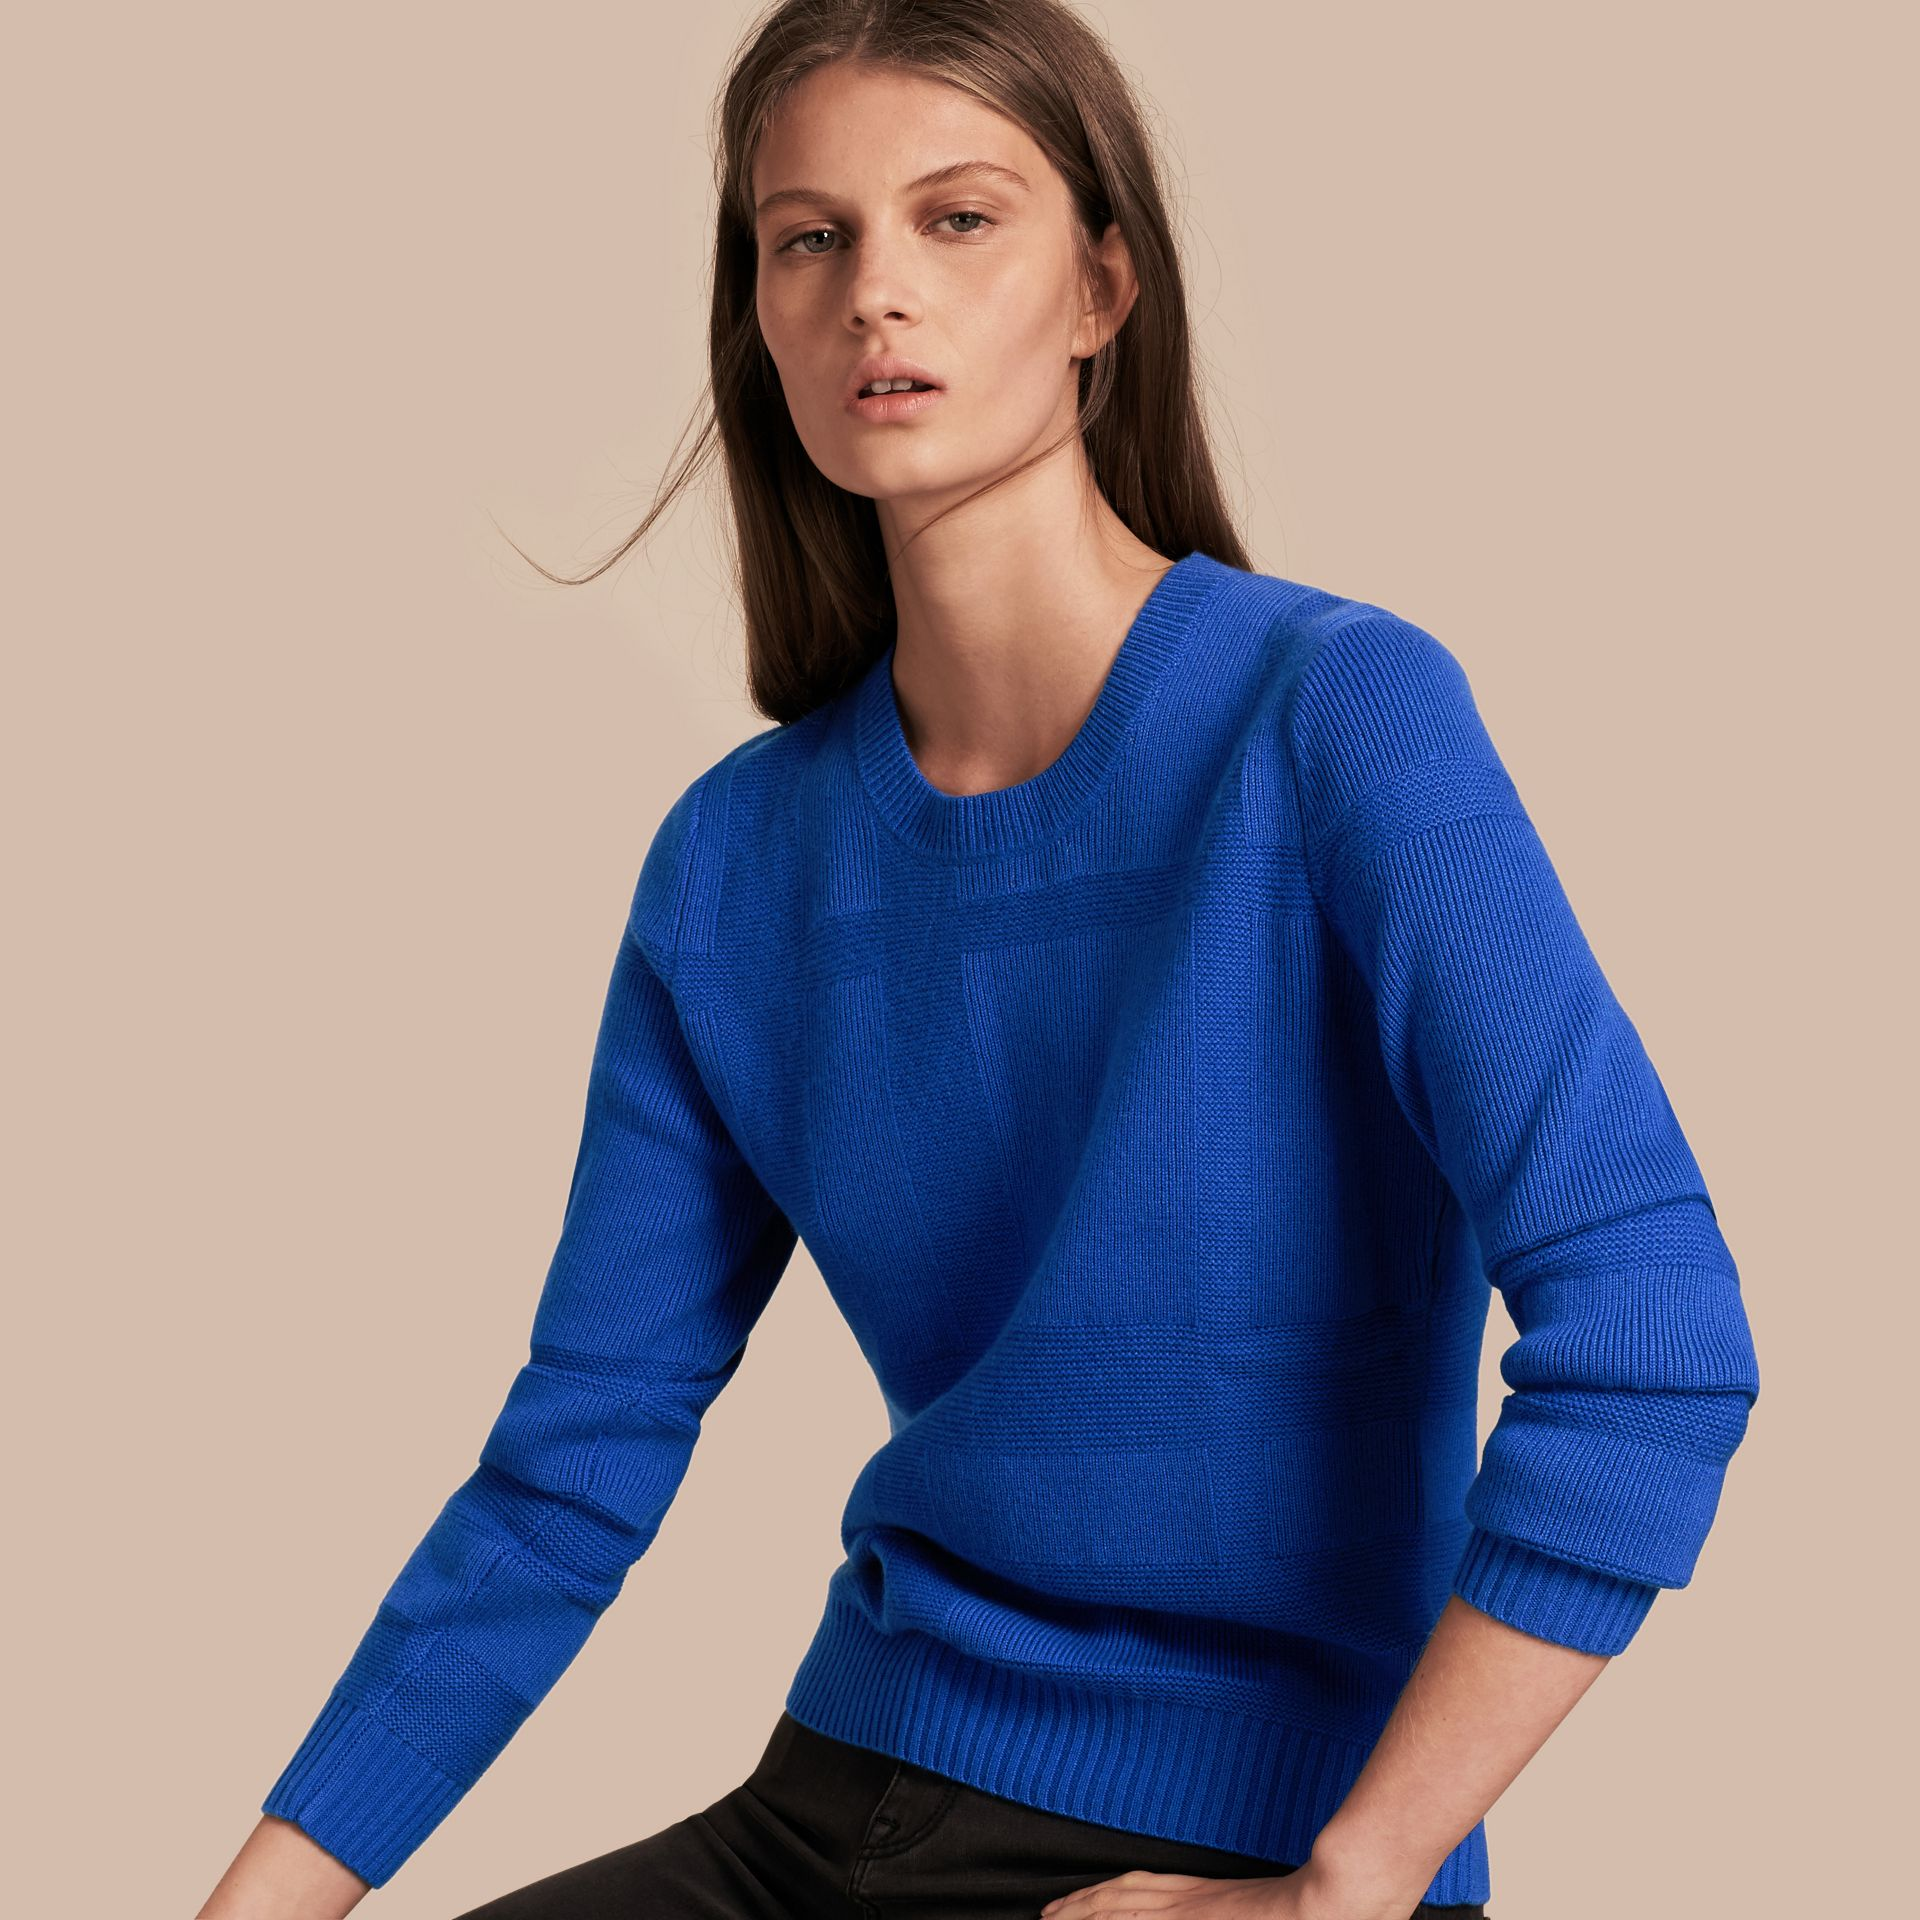 Sapphire blue Check-knit Wool Cashmere Sweater Sapphire Blue - gallery image 1